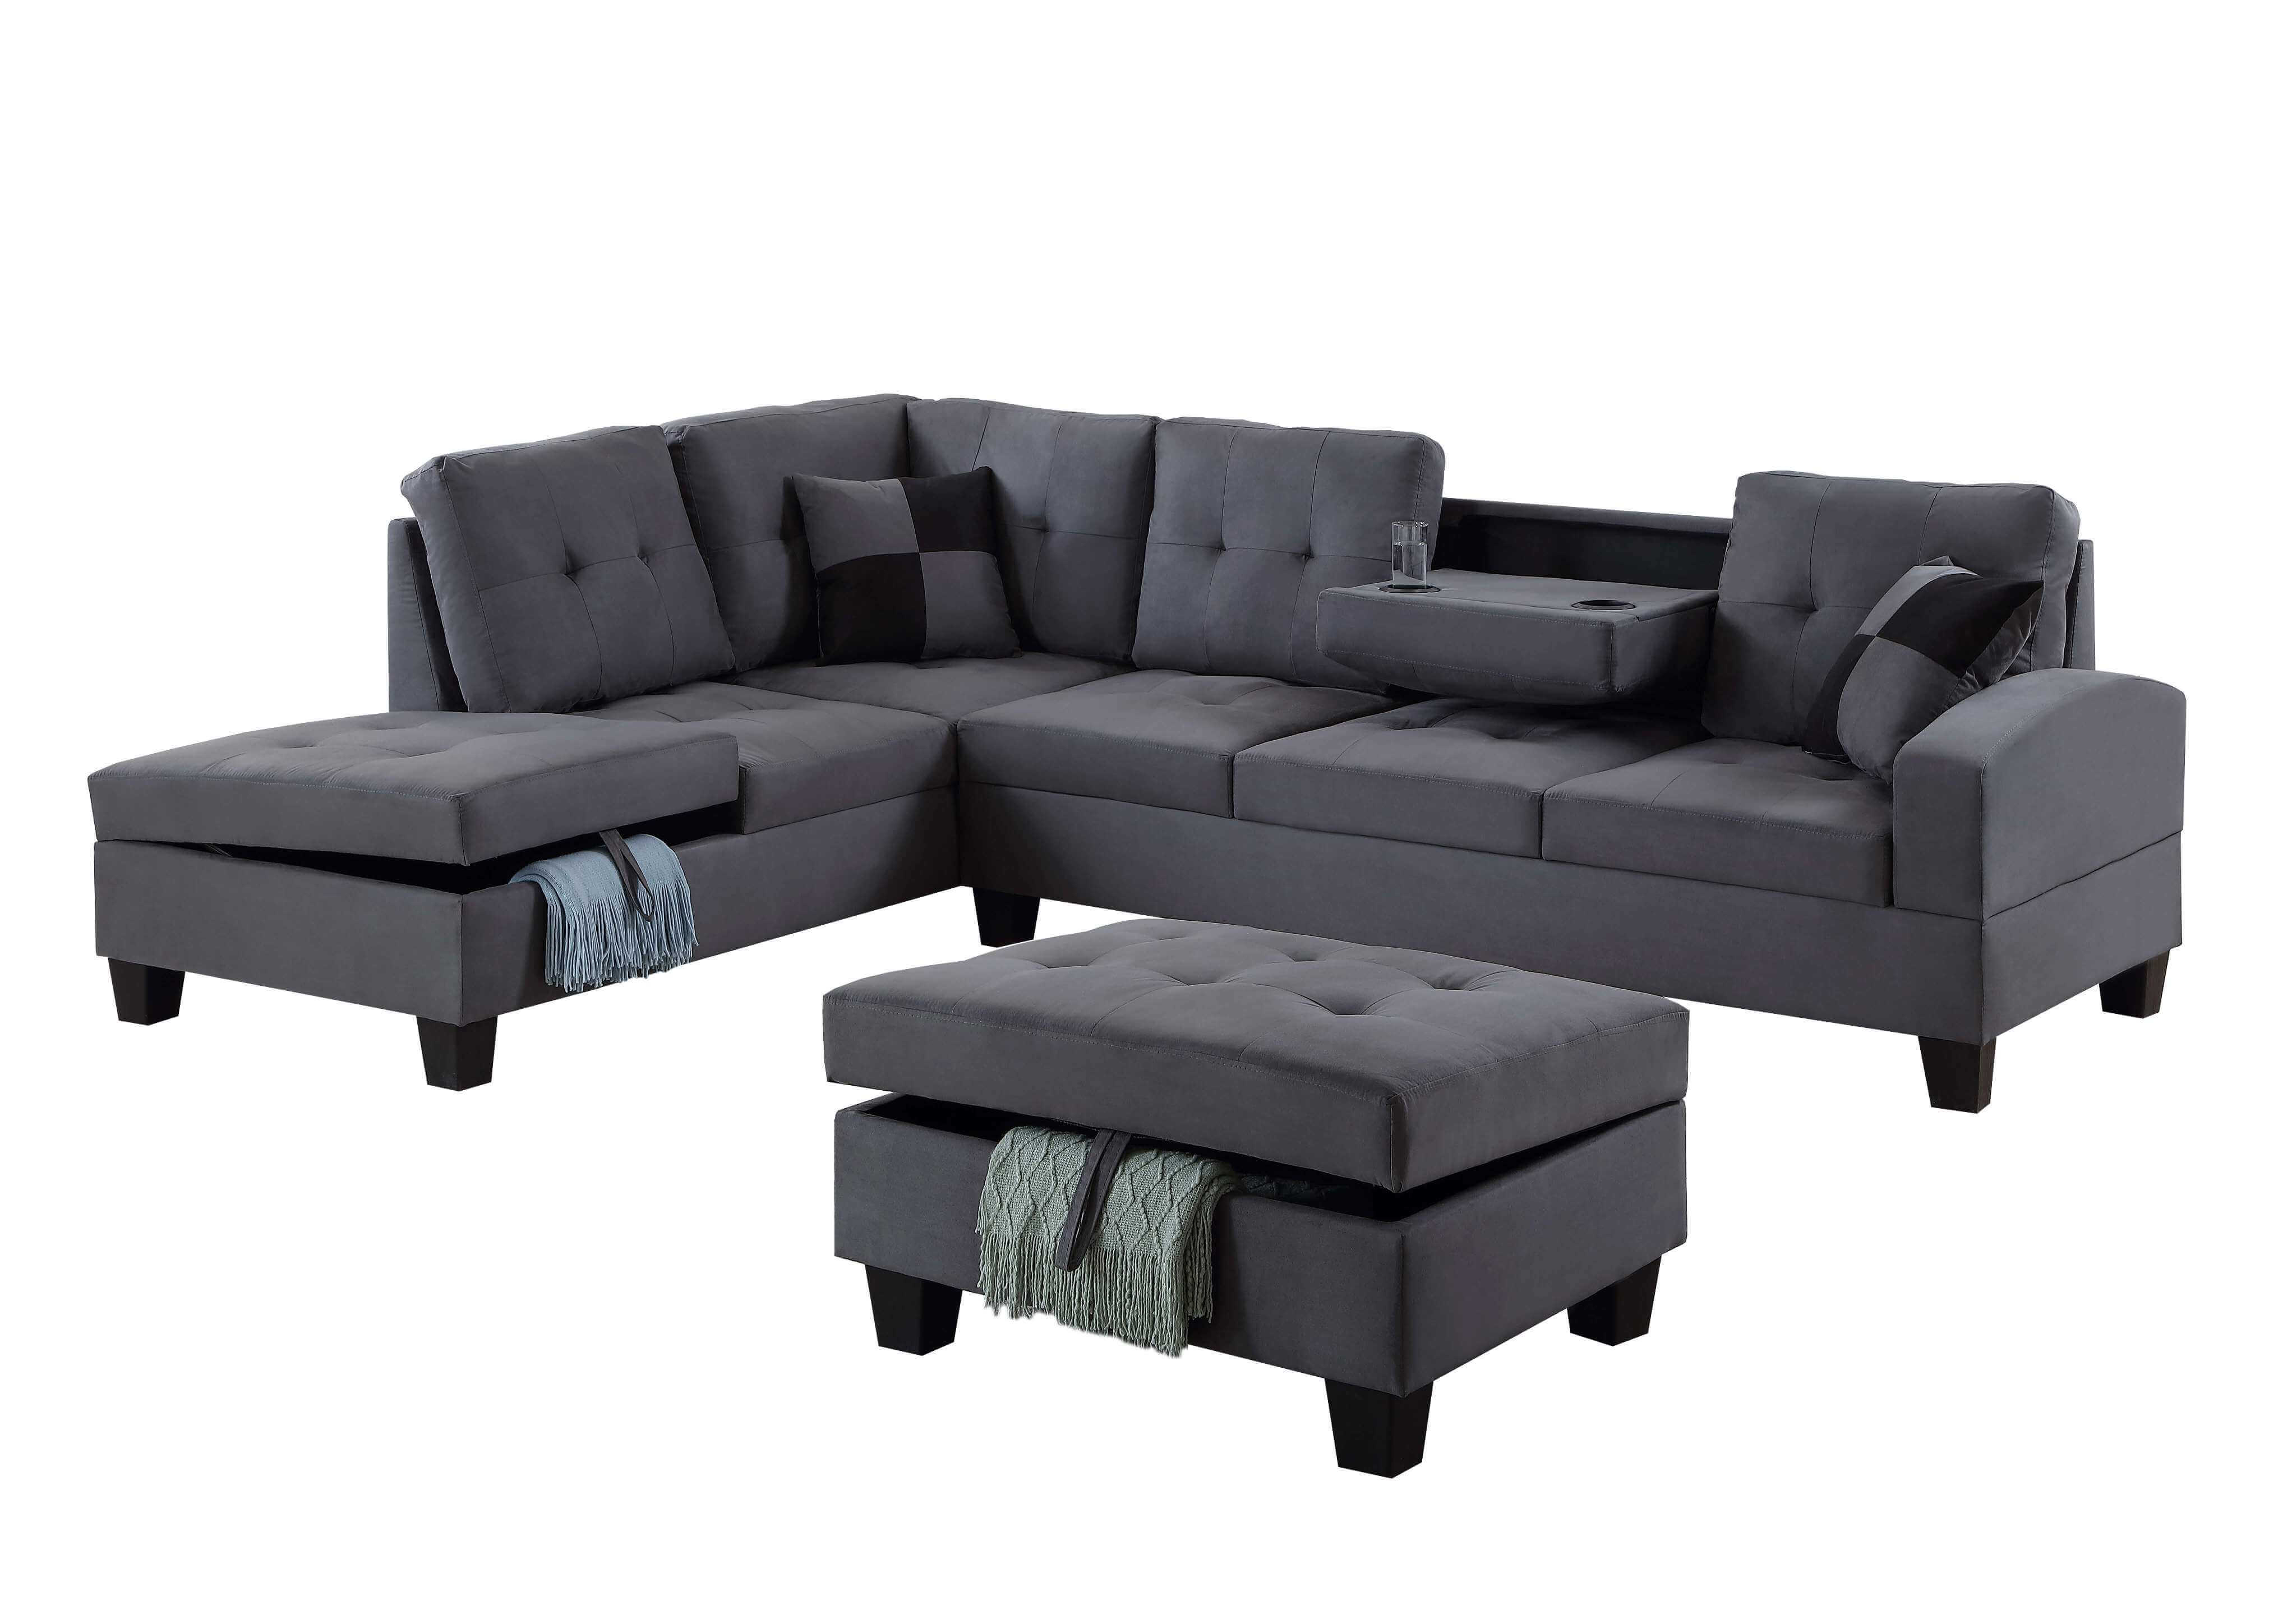 Terrific U5462 Grey Sectional W Free Ottoman Gmtry Best Dining Table And Chair Ideas Images Gmtryco